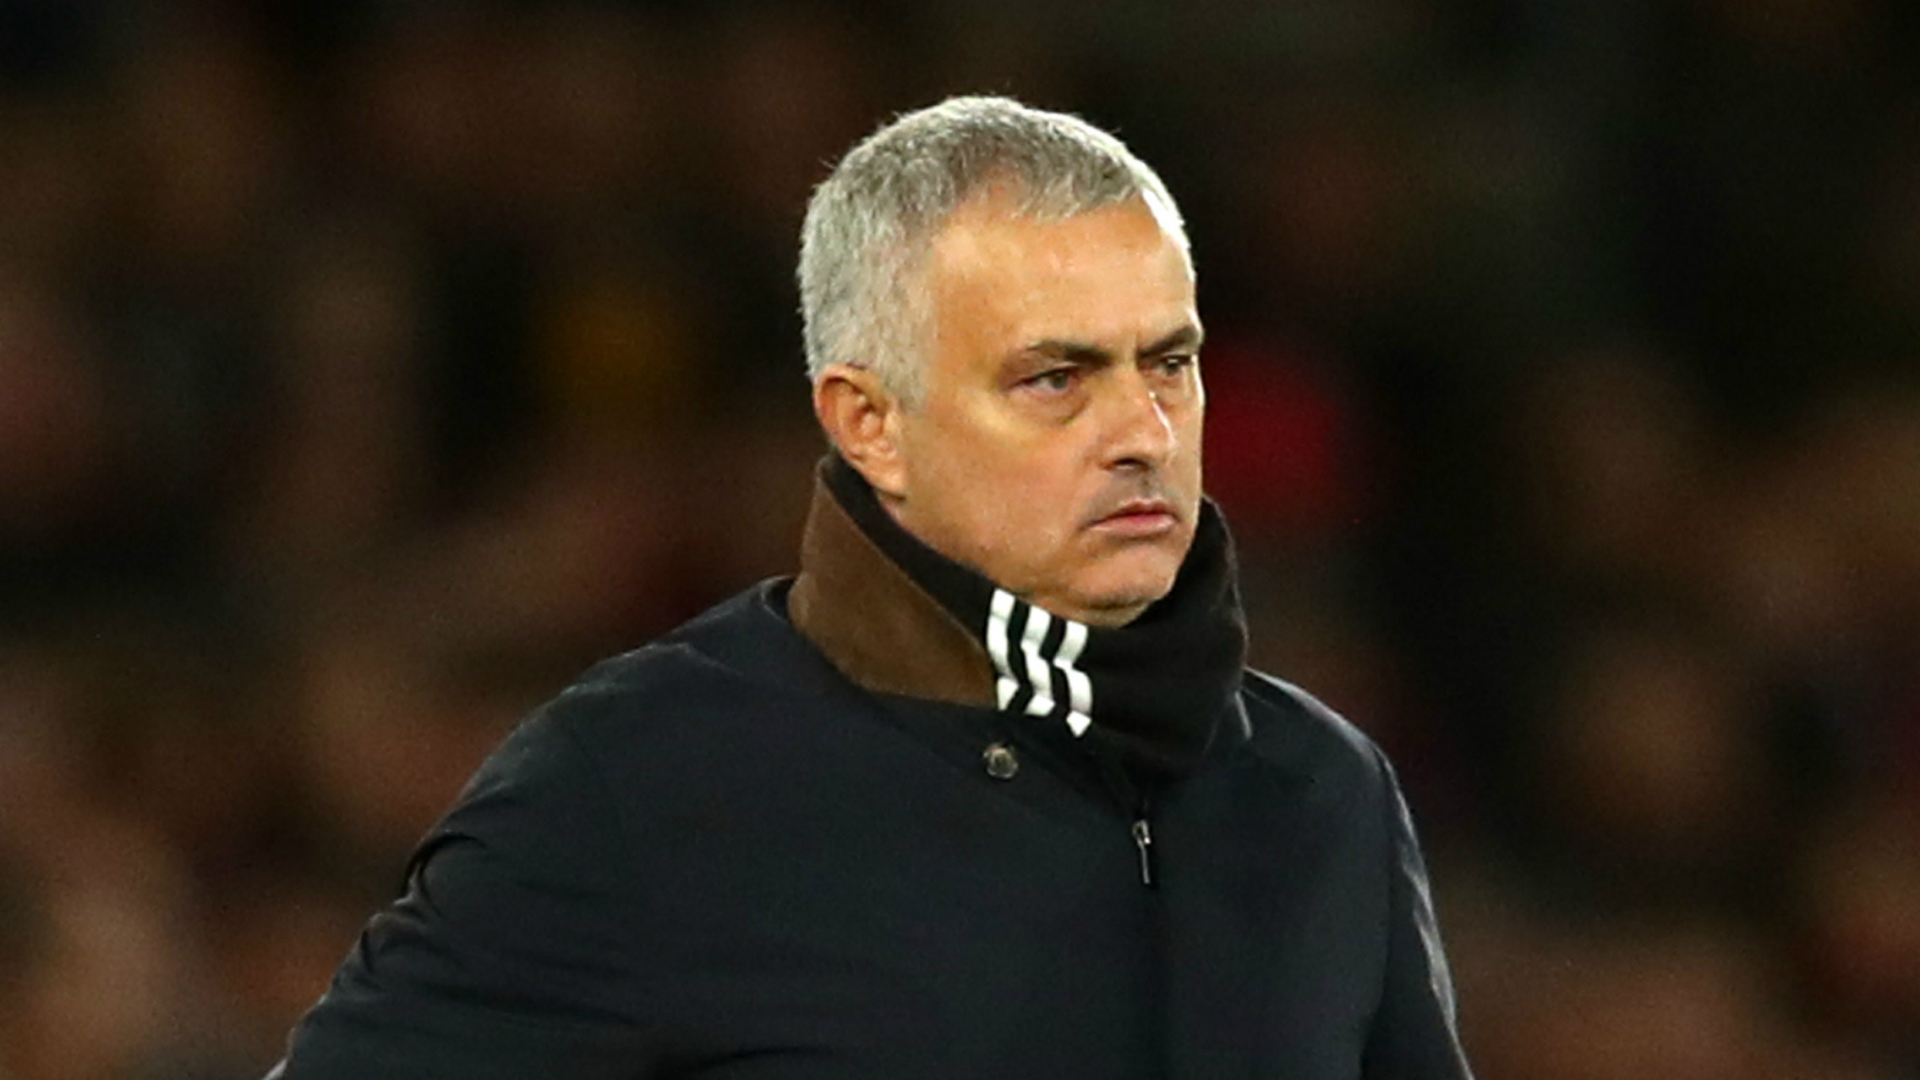 Mourinho gives nothing away to MUTV